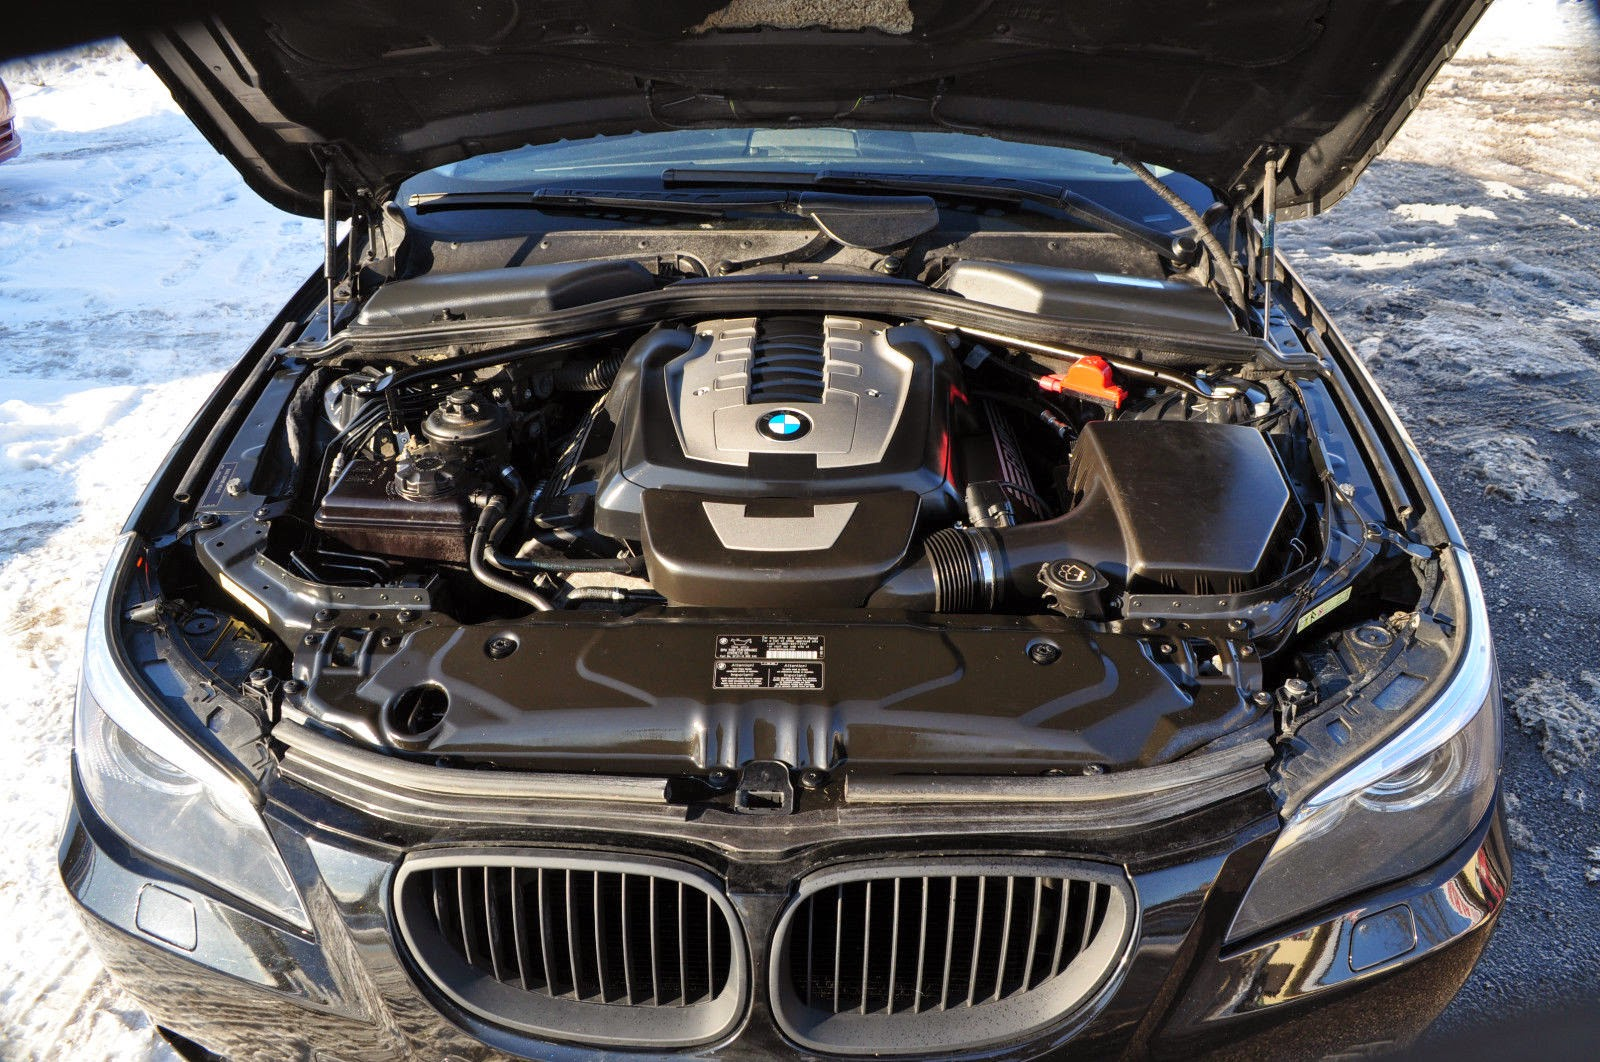 The 550i is powered by the N62B48 all alloy 4.8 liter DOHC V8 pushing 360  horsepower into a 6 speed manual transmission. The 550i will match a 335i  in ...